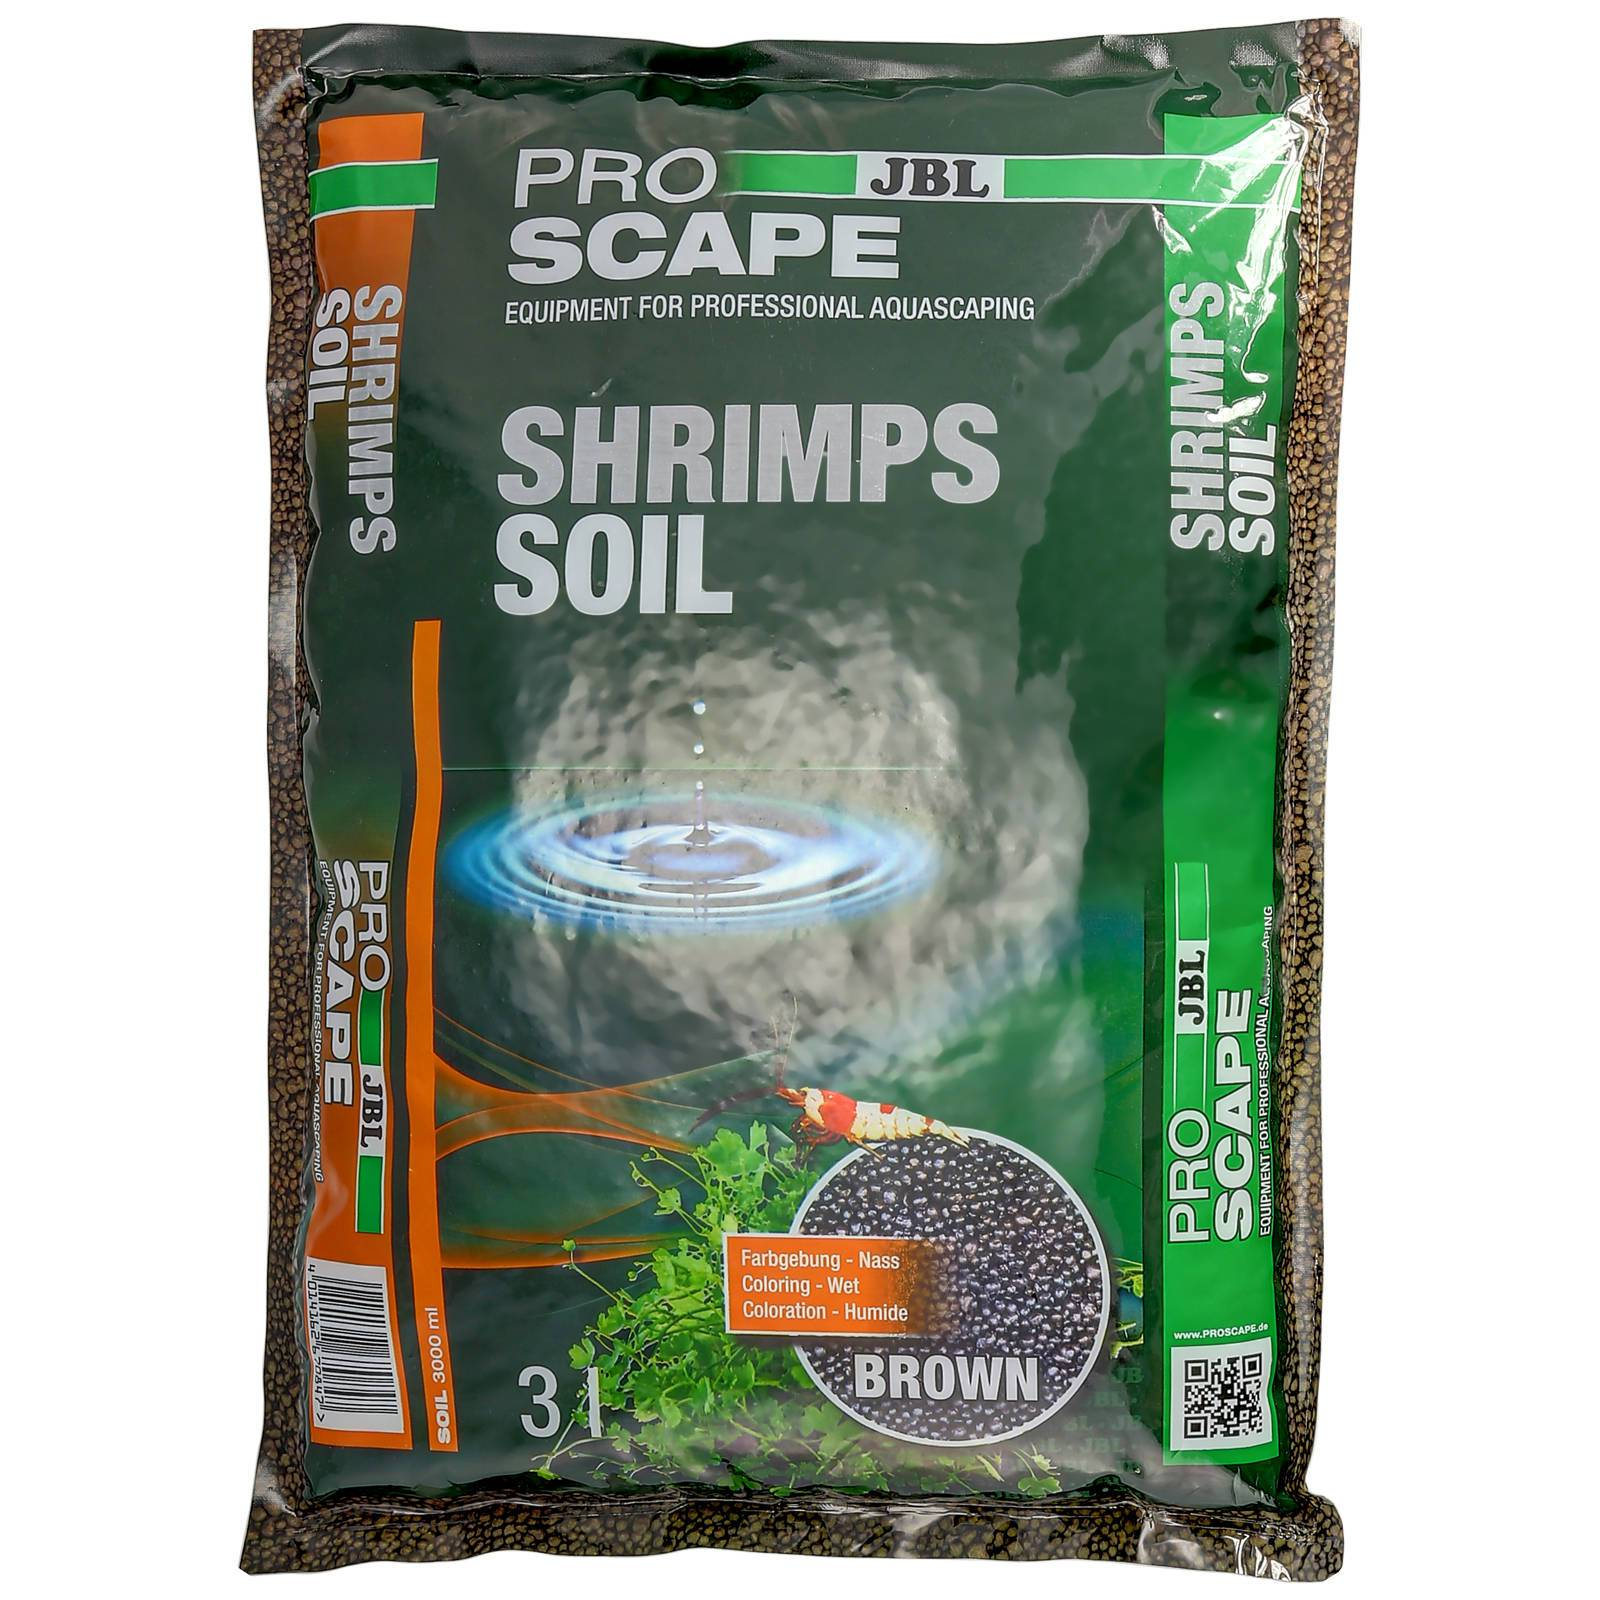 JBL - ProScape - ShrimpsSoil - Brown - 3 l